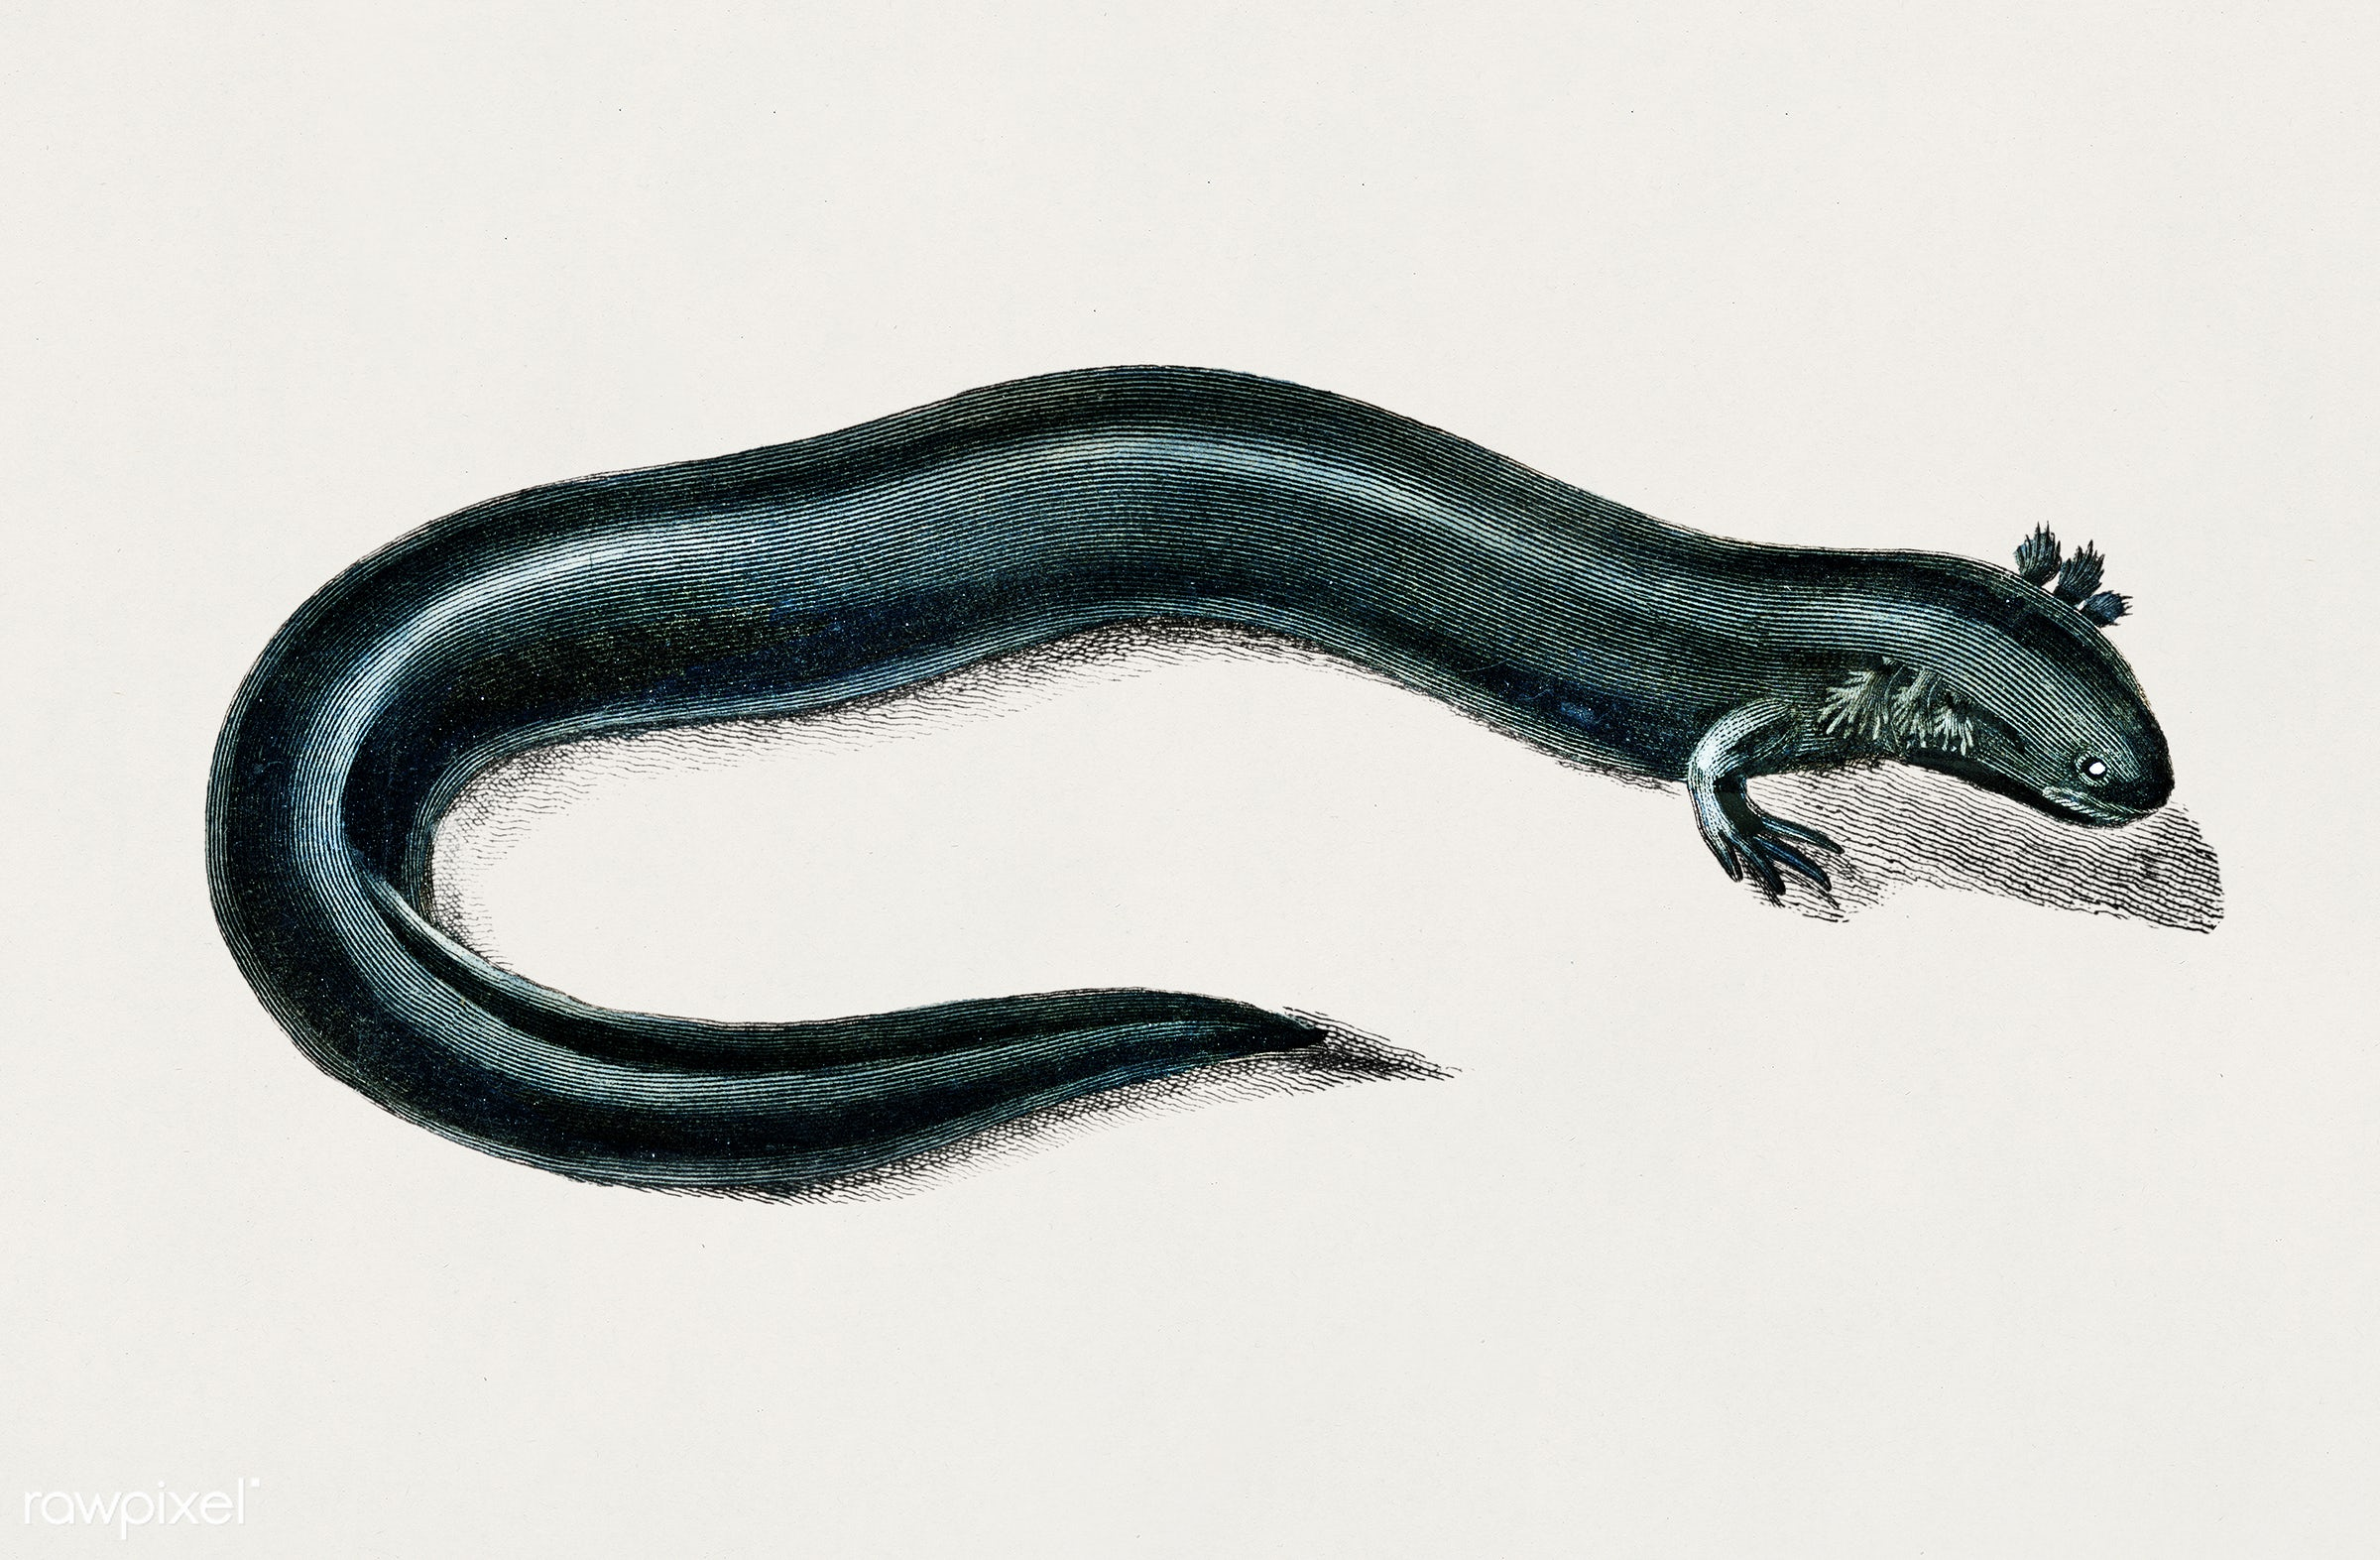 Greater siren (Siren lacertina) illustrated by Charles Dessalines D' Orbigny (1806-1876). Digitally enhanced from our...